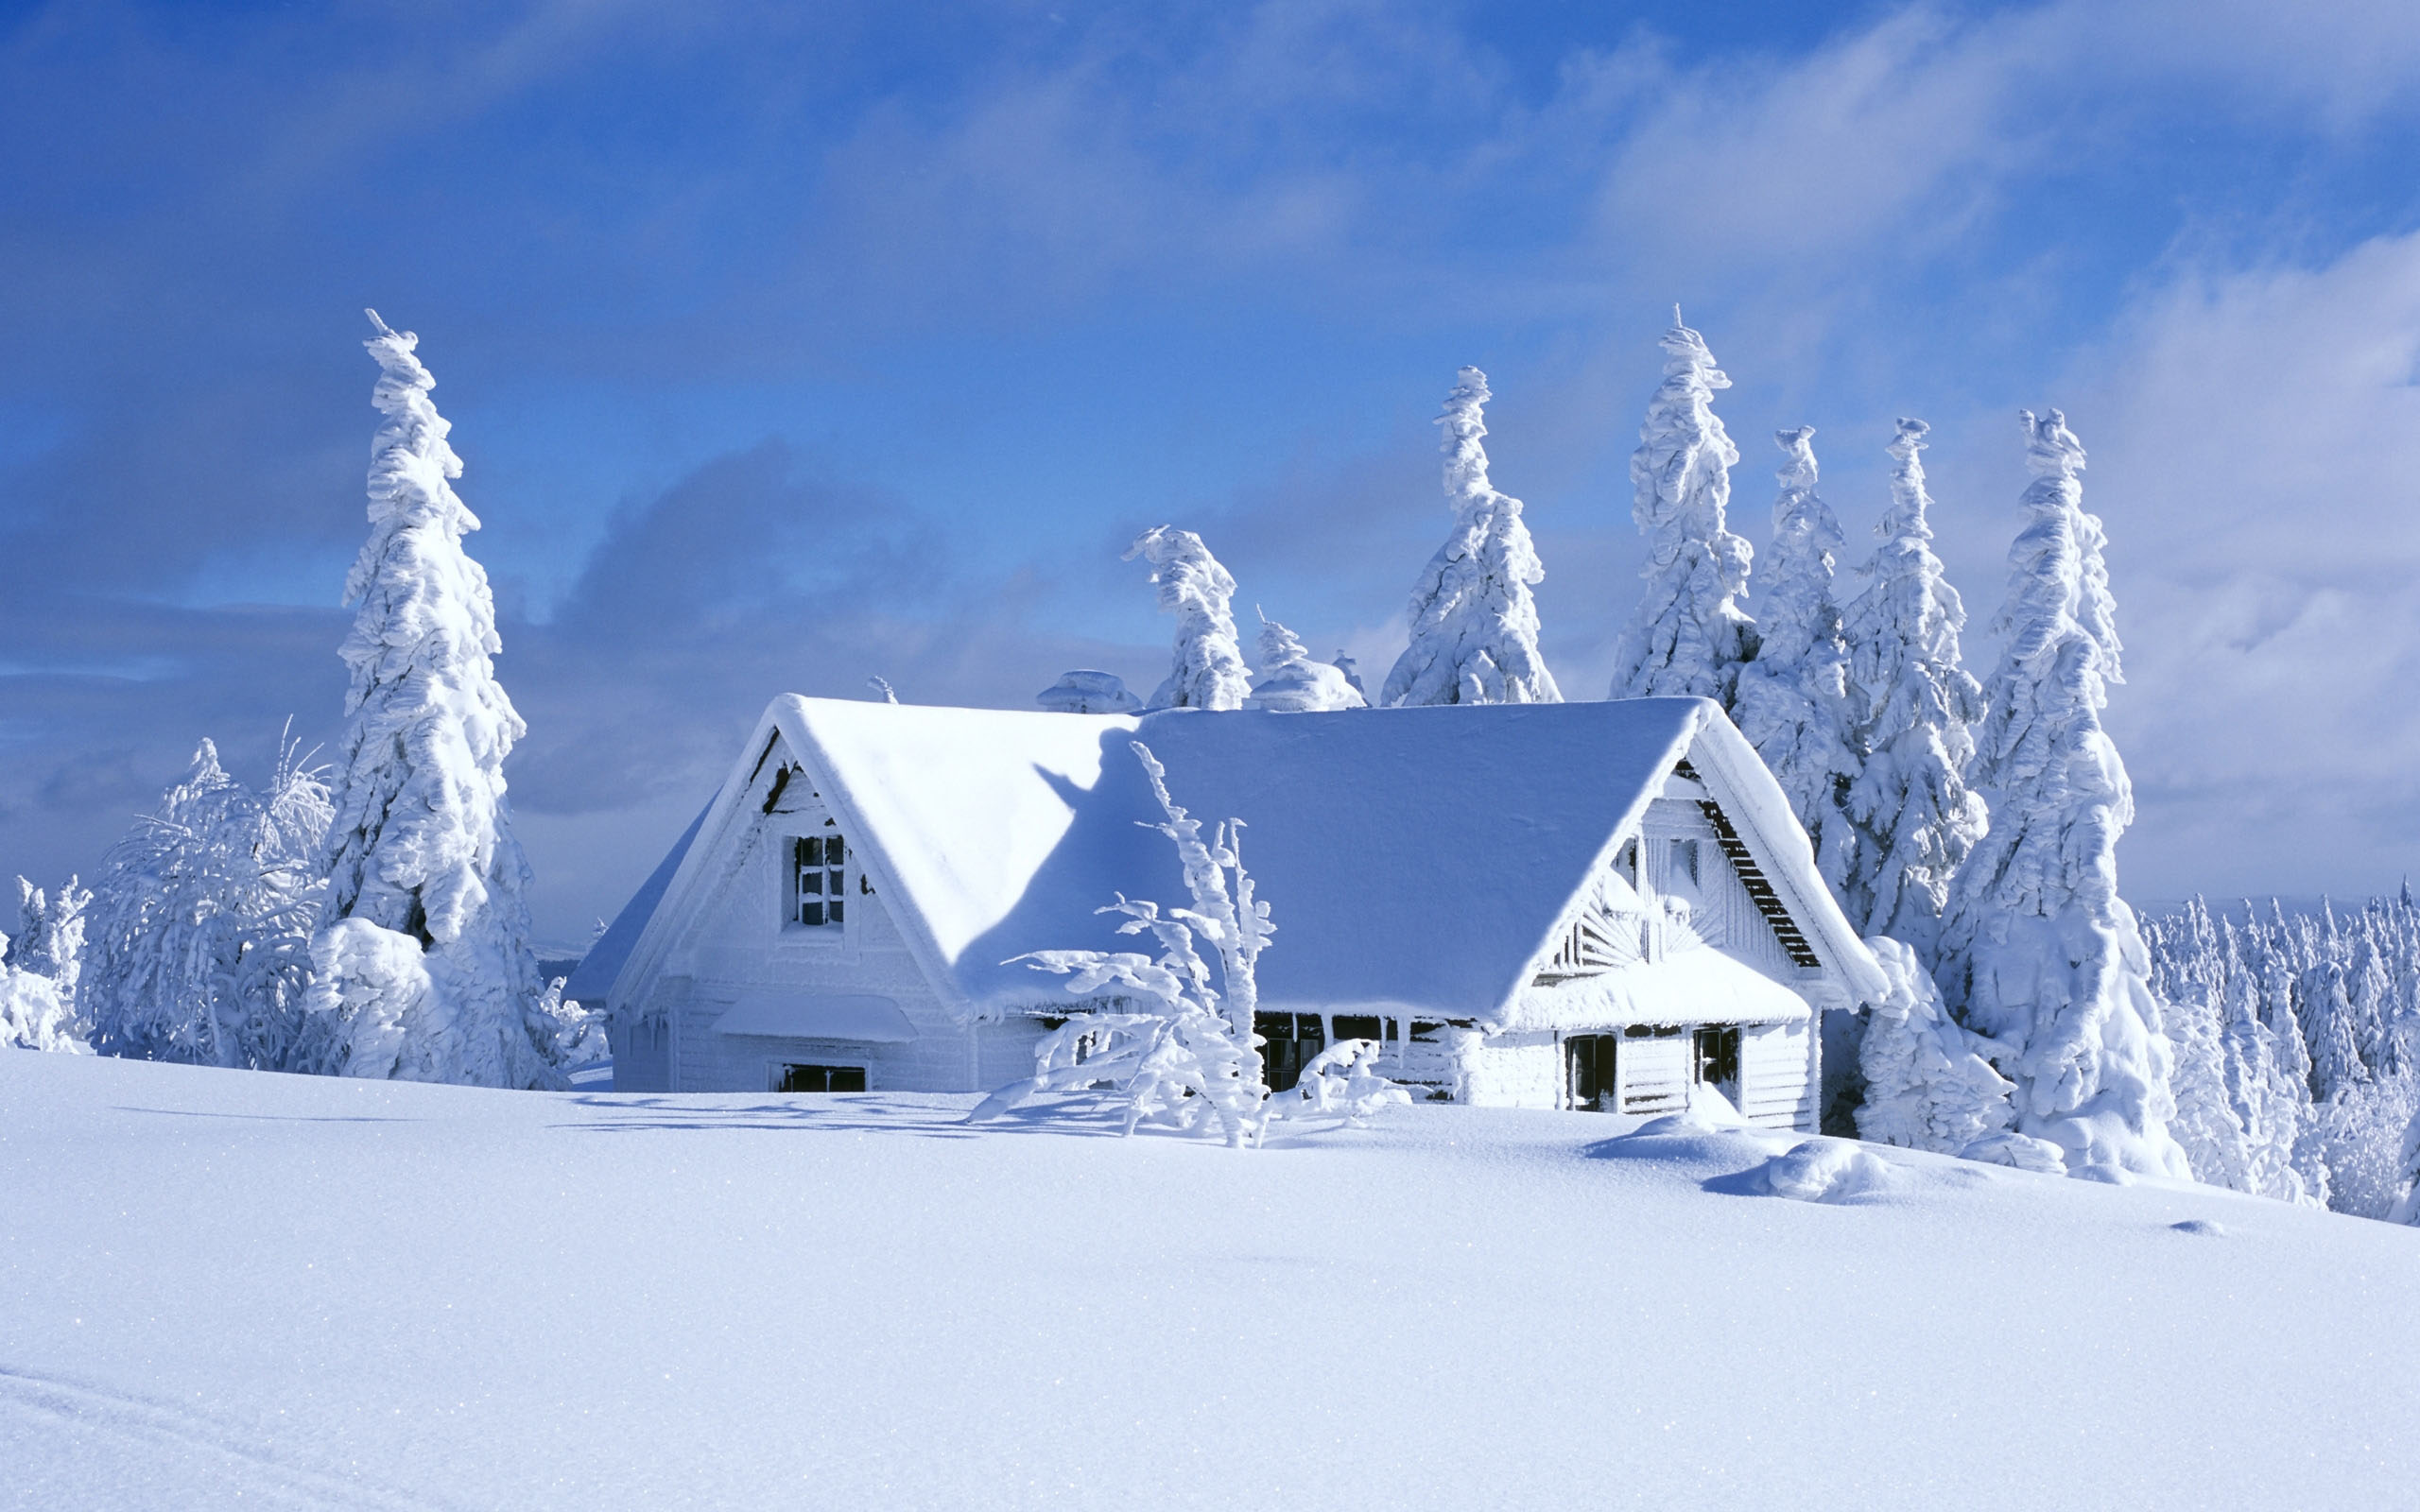 wallpaper winter wallpaper hd best winter wallpapers best winter 2560x1600